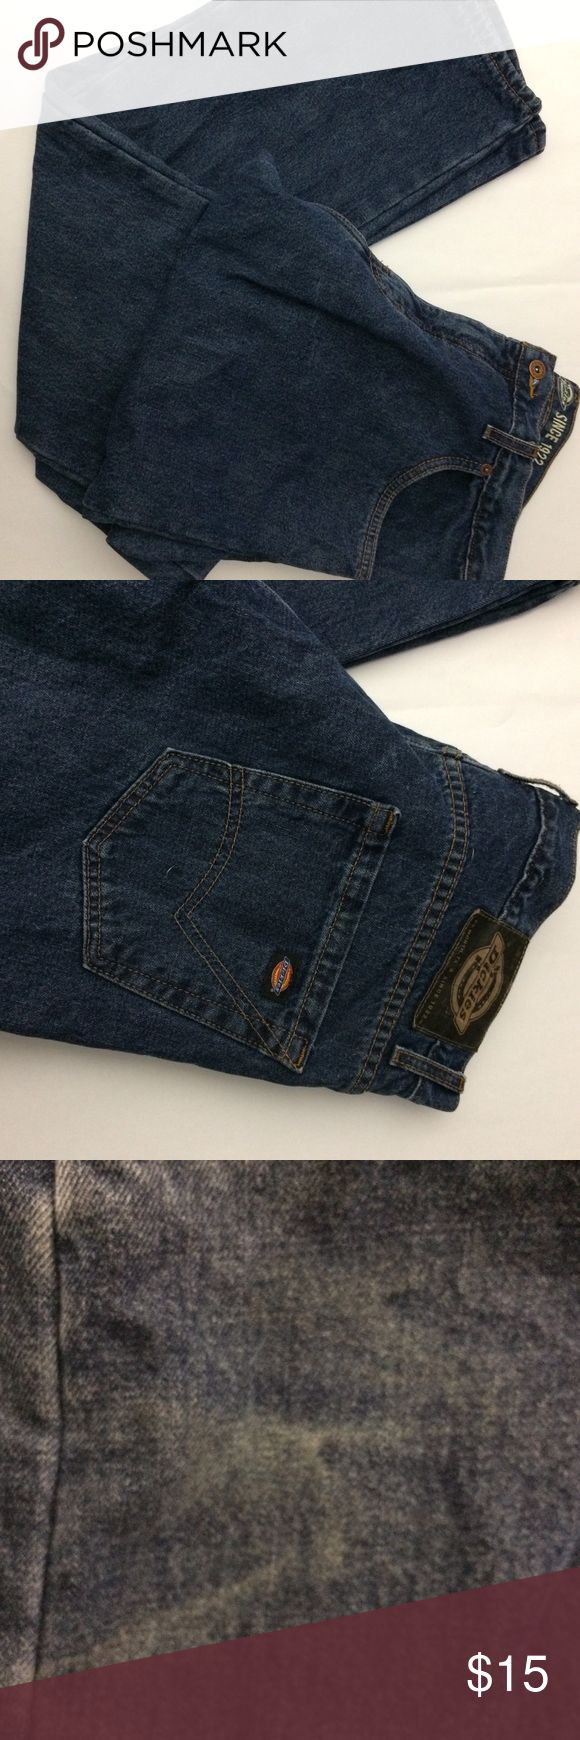 Men's Dickeys Pants Lined with Flannel Please see photos :) Dickies Jeans